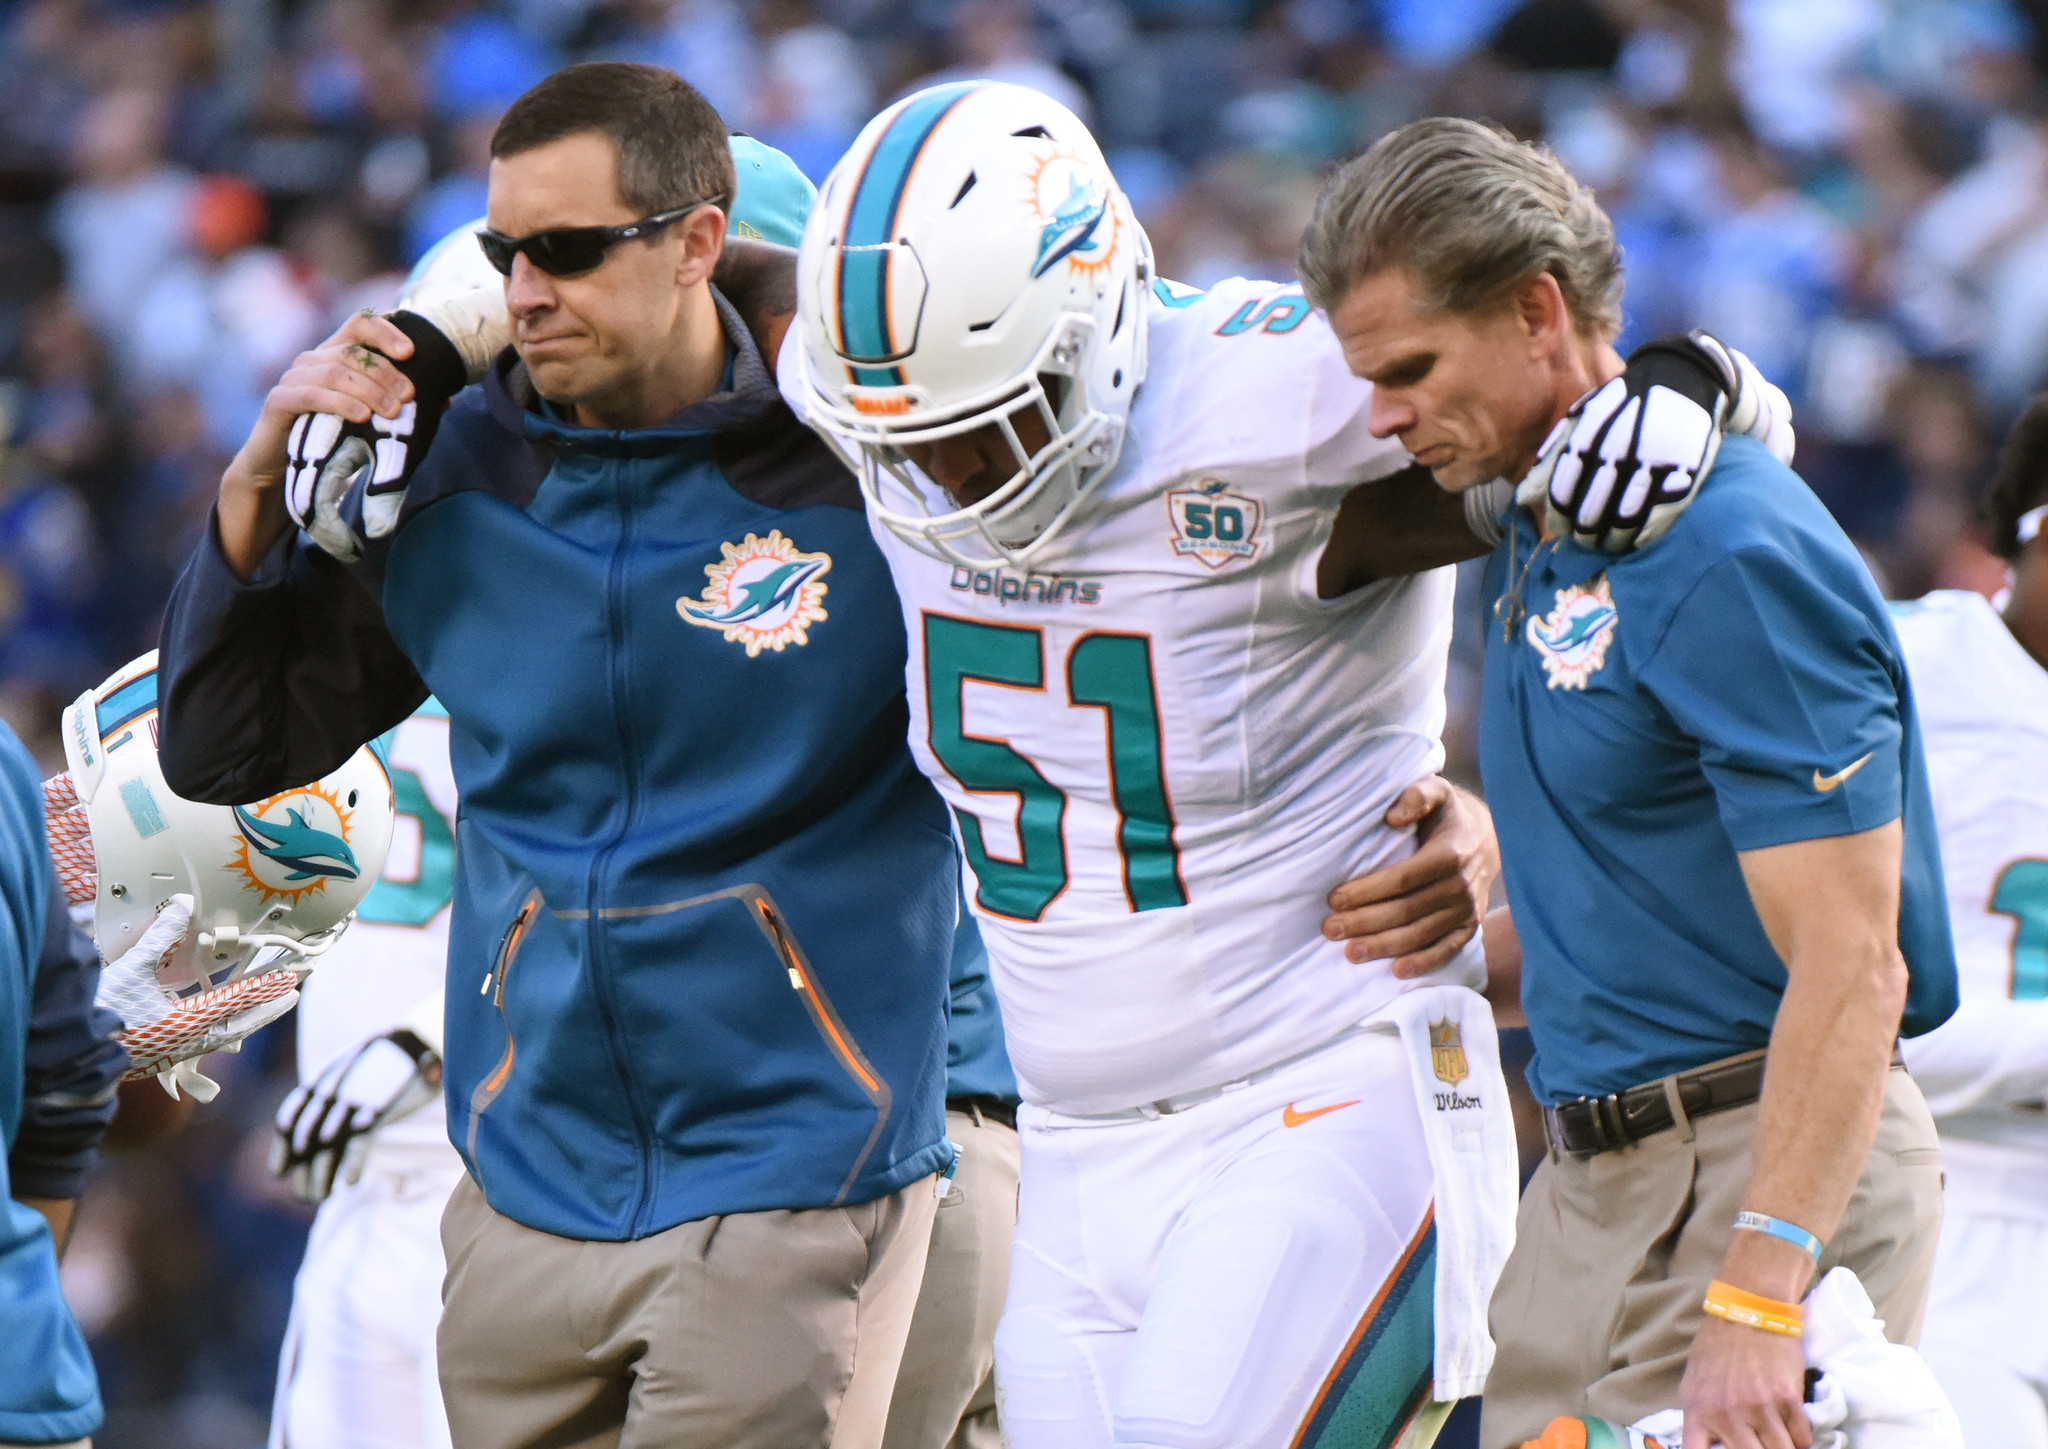 Fl-sp-dolphins-injuries-20170525